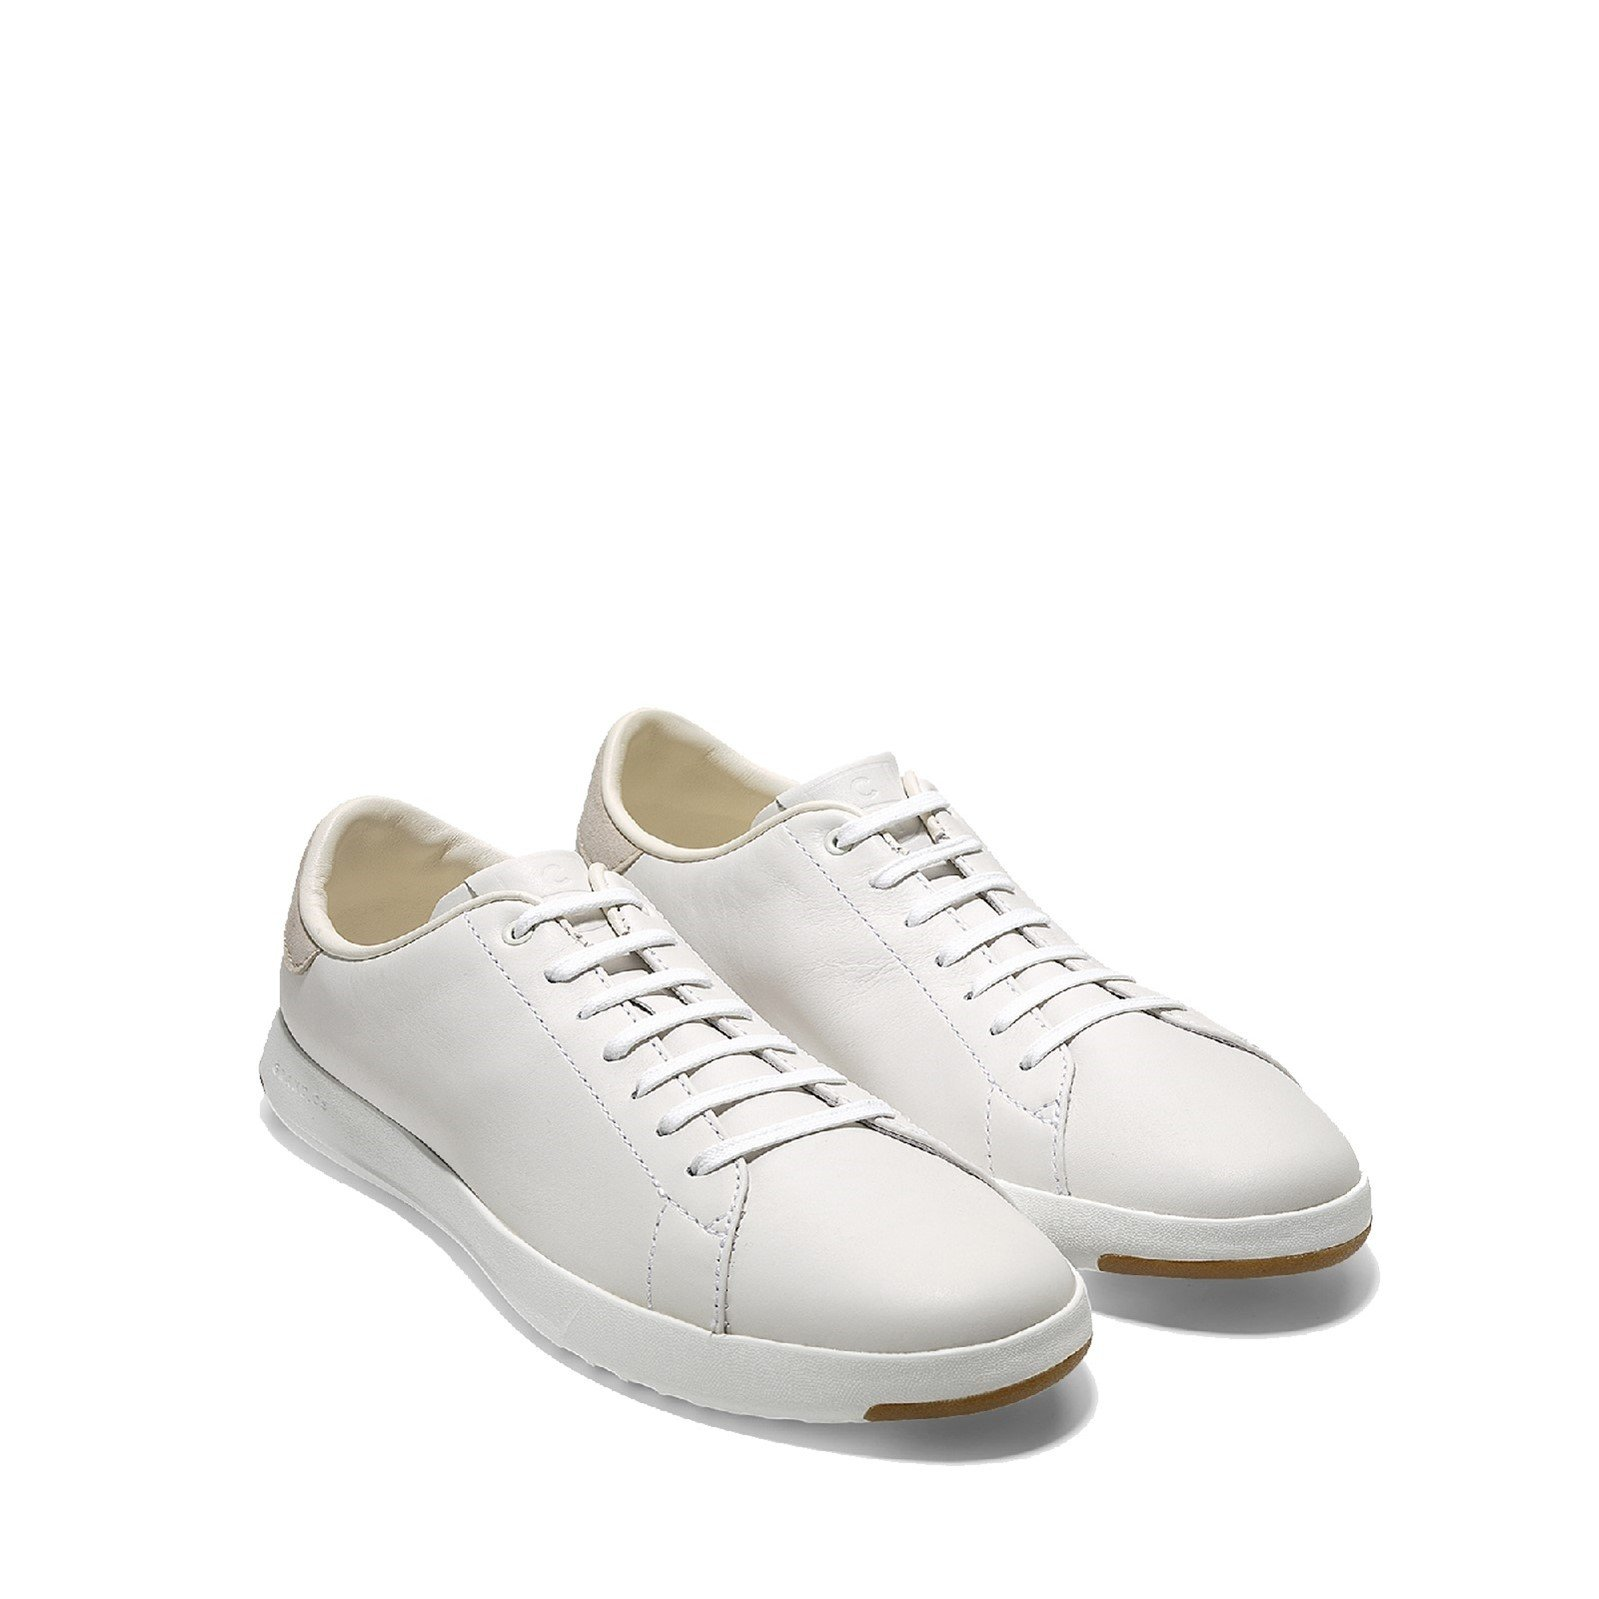 Cole Haan White Grandpro Tennis Shoe